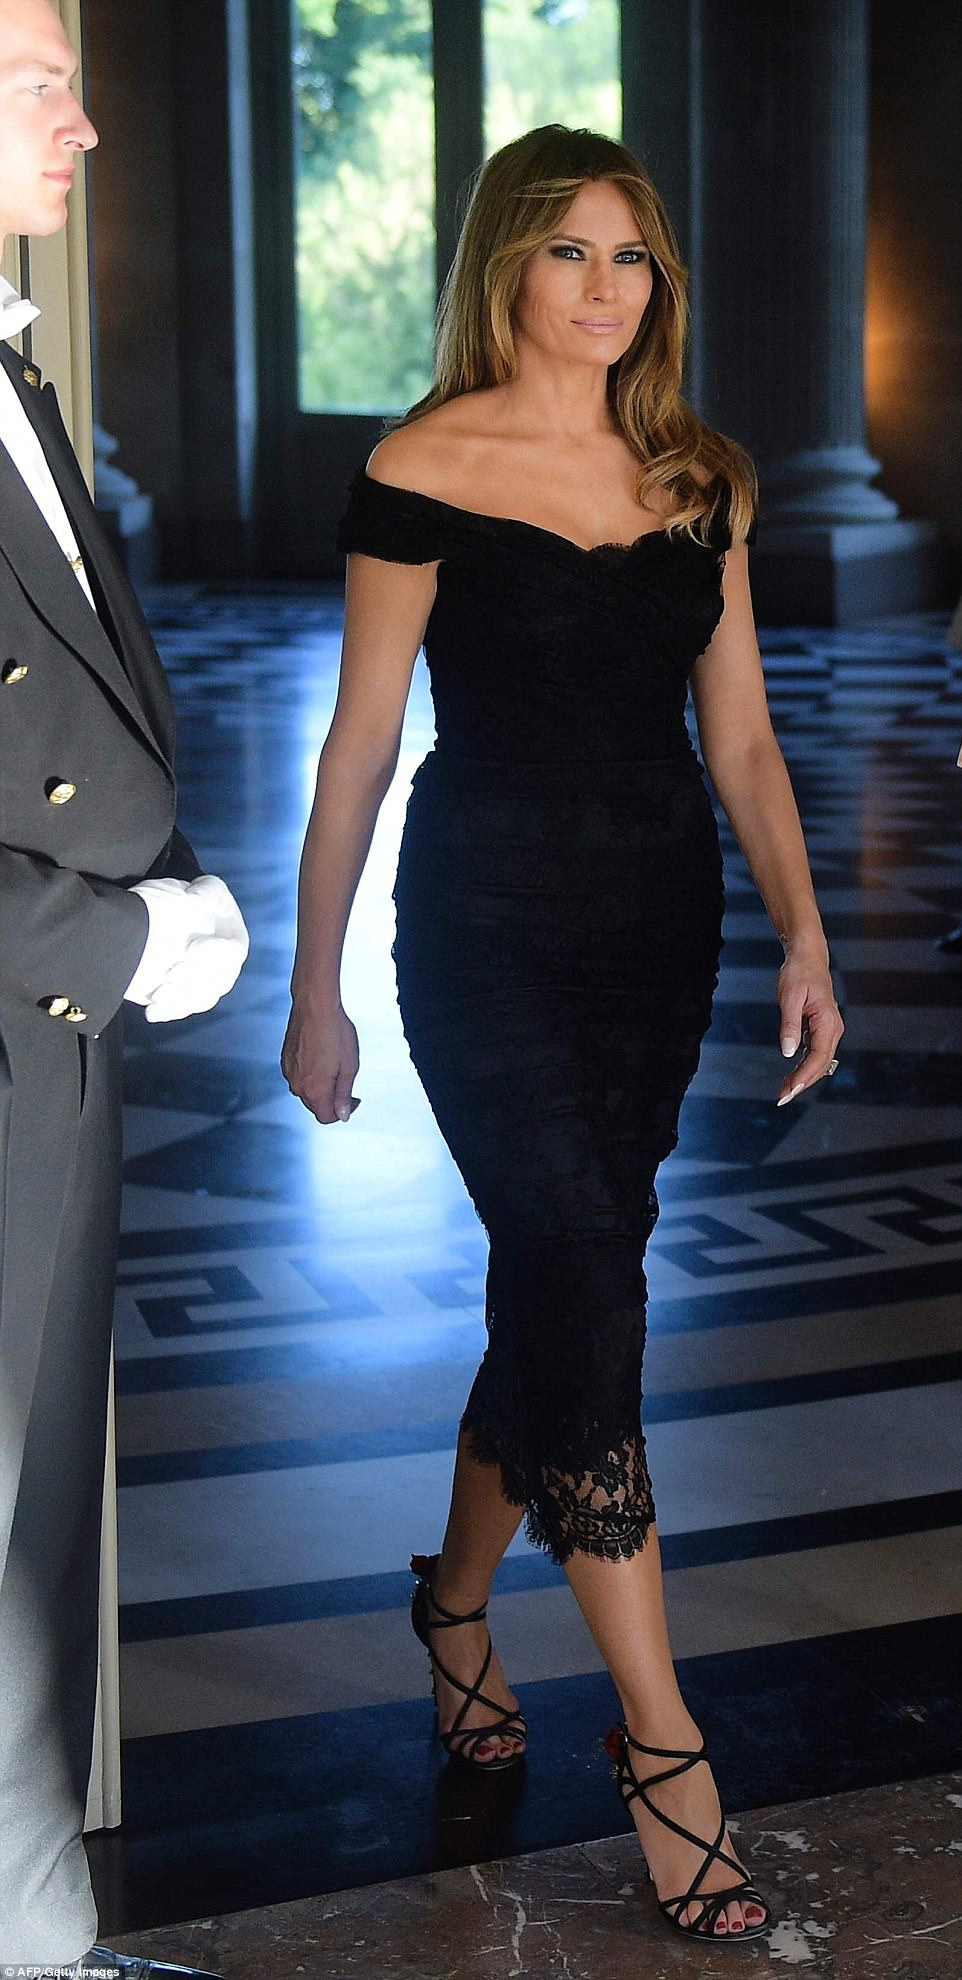 Melania Trump S Best Looks Since She Became The First Lady